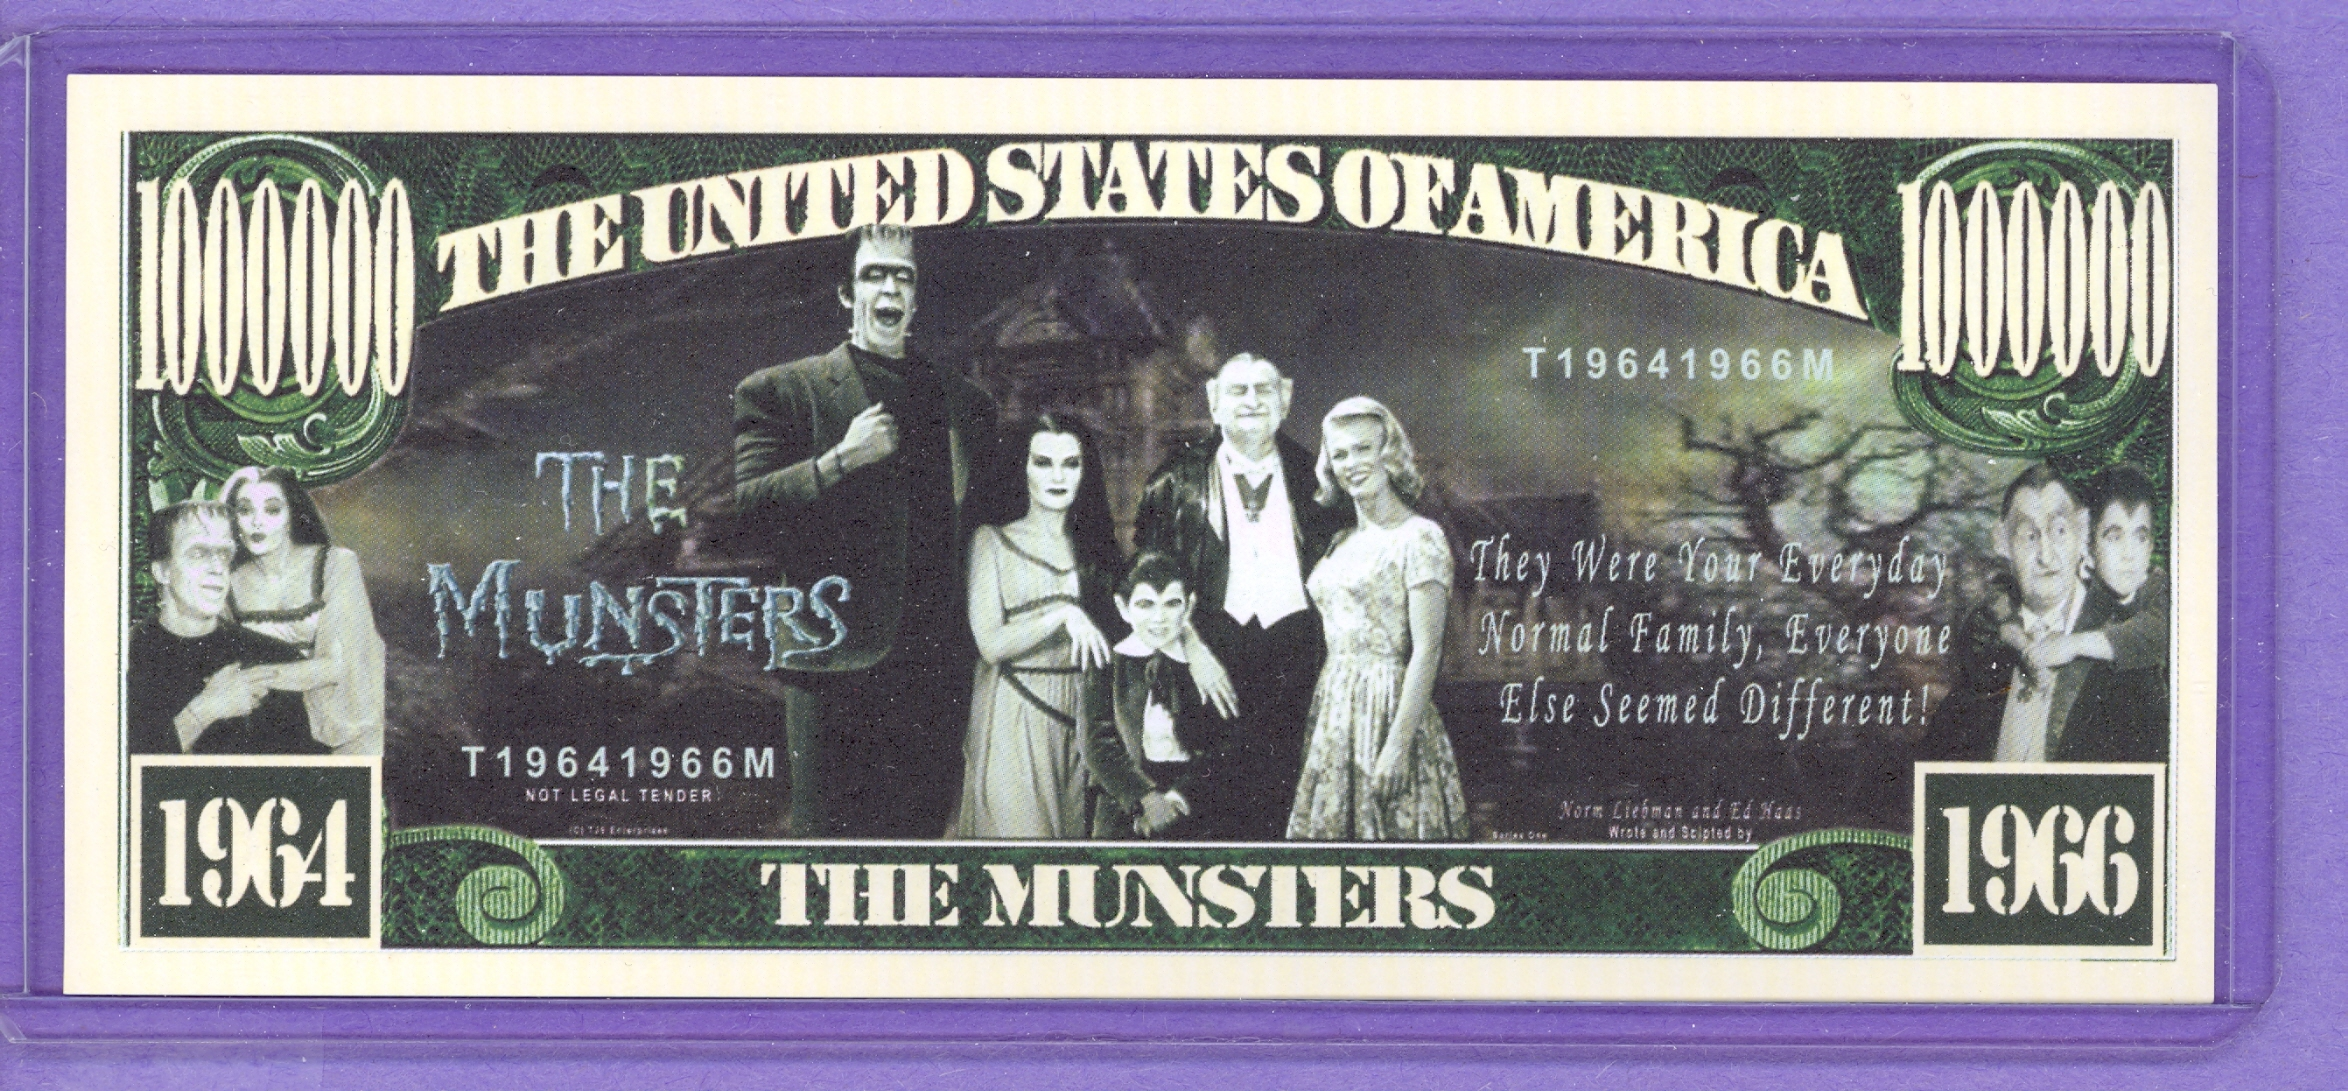 The Munsters $1,000,000 Novelty Note